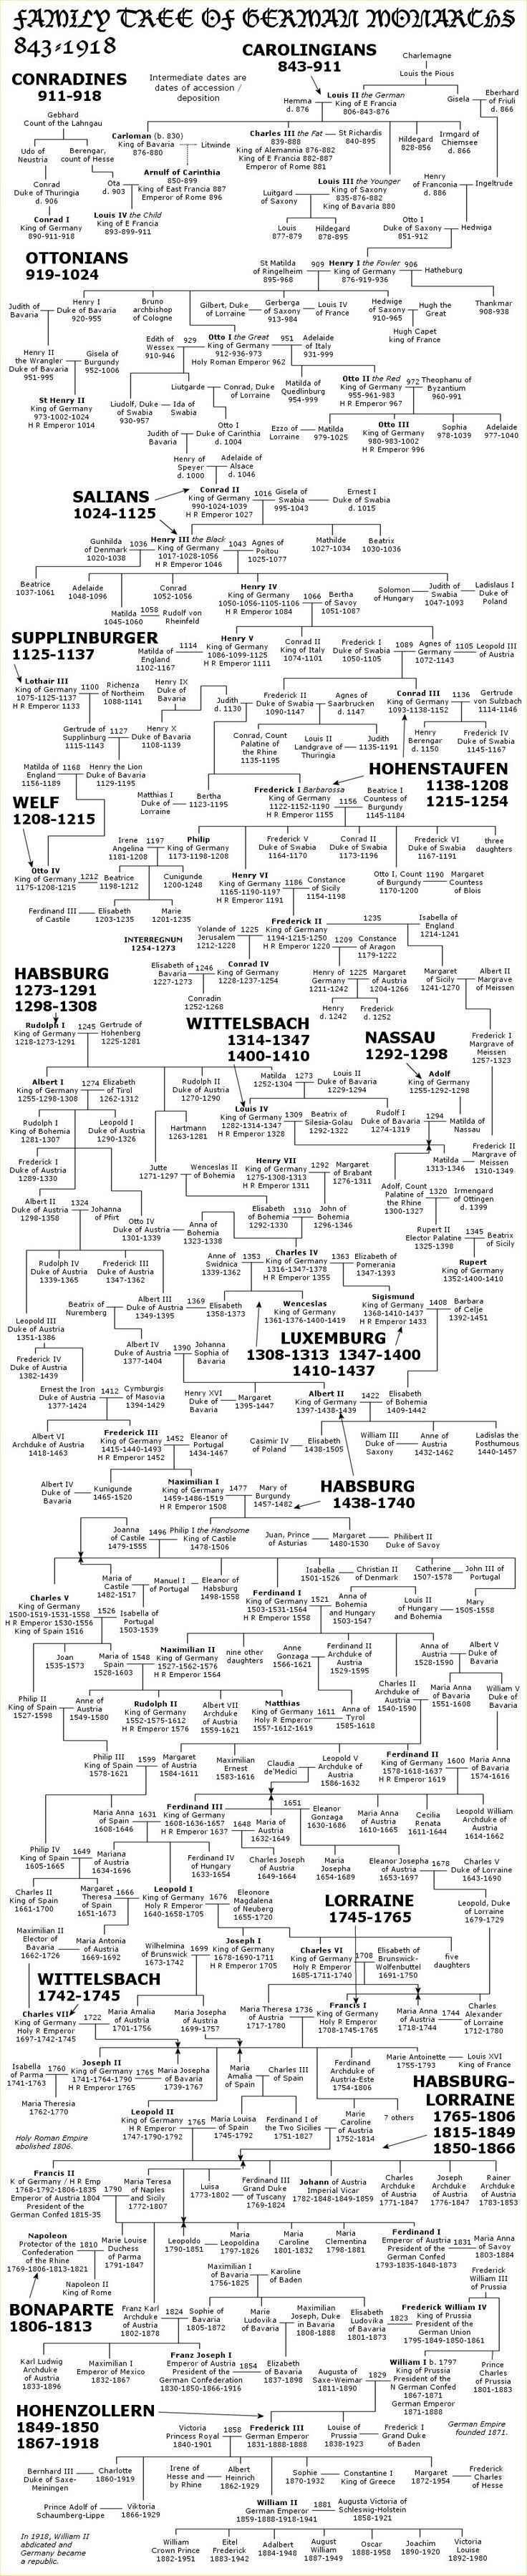 best 25 family tree book ideas on pinterest family history book